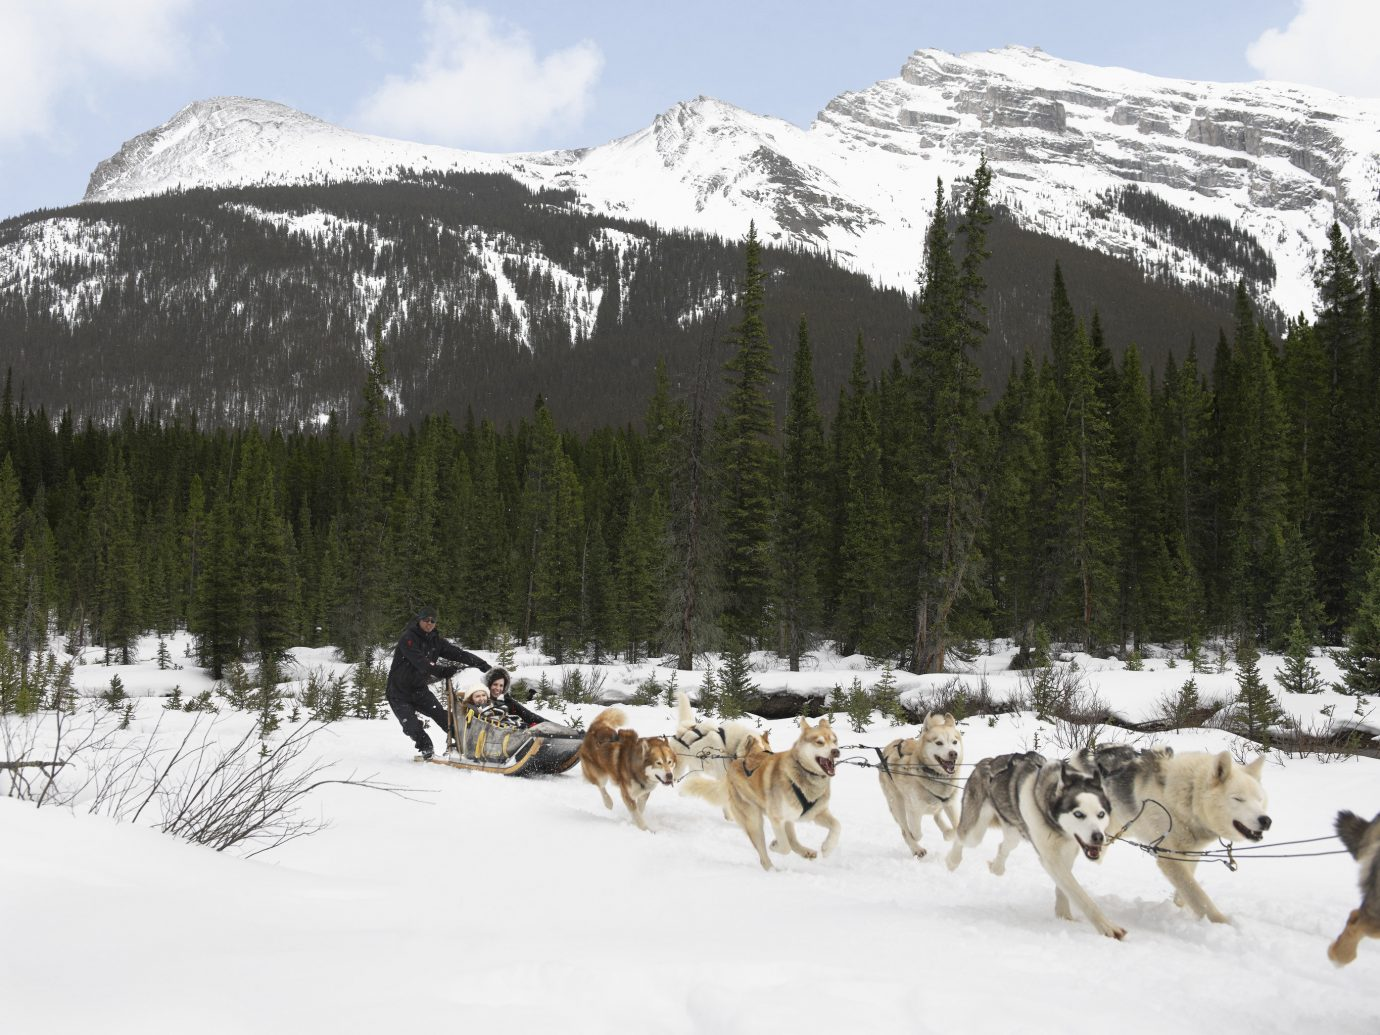 Alberta Canada Road Trips snow outdoor transport sky sled cow mountain vehicle dog sled land vehicle group herd cattle Winter season mountain range